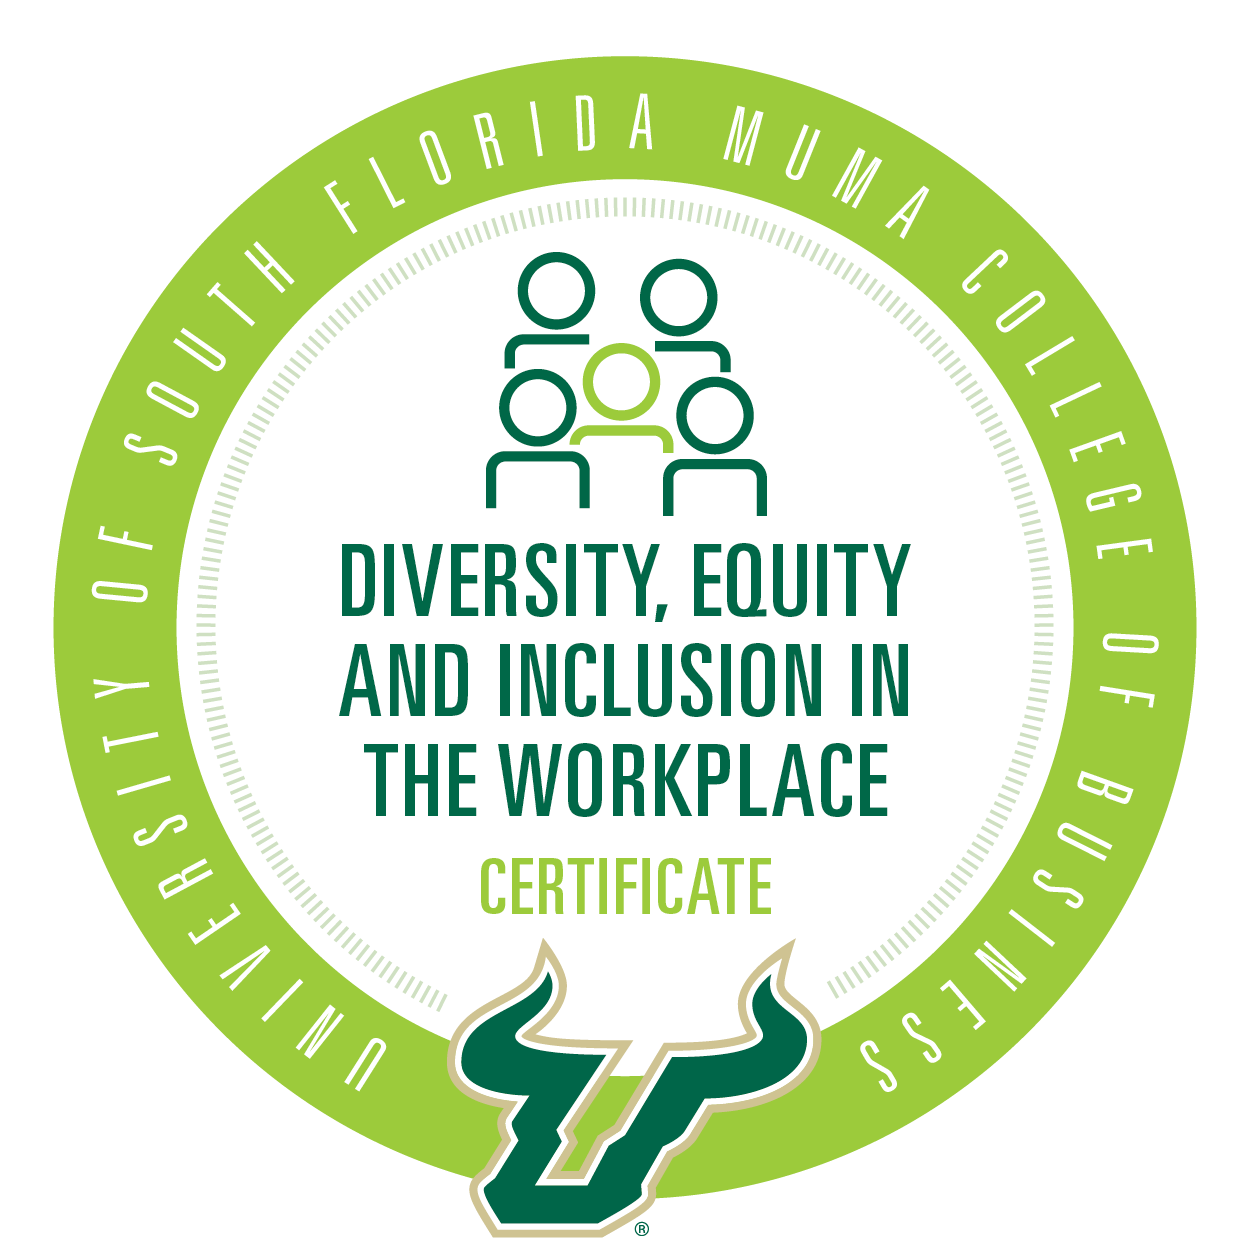 Diversity, Equity and Inclusion in the Workplace Certificate